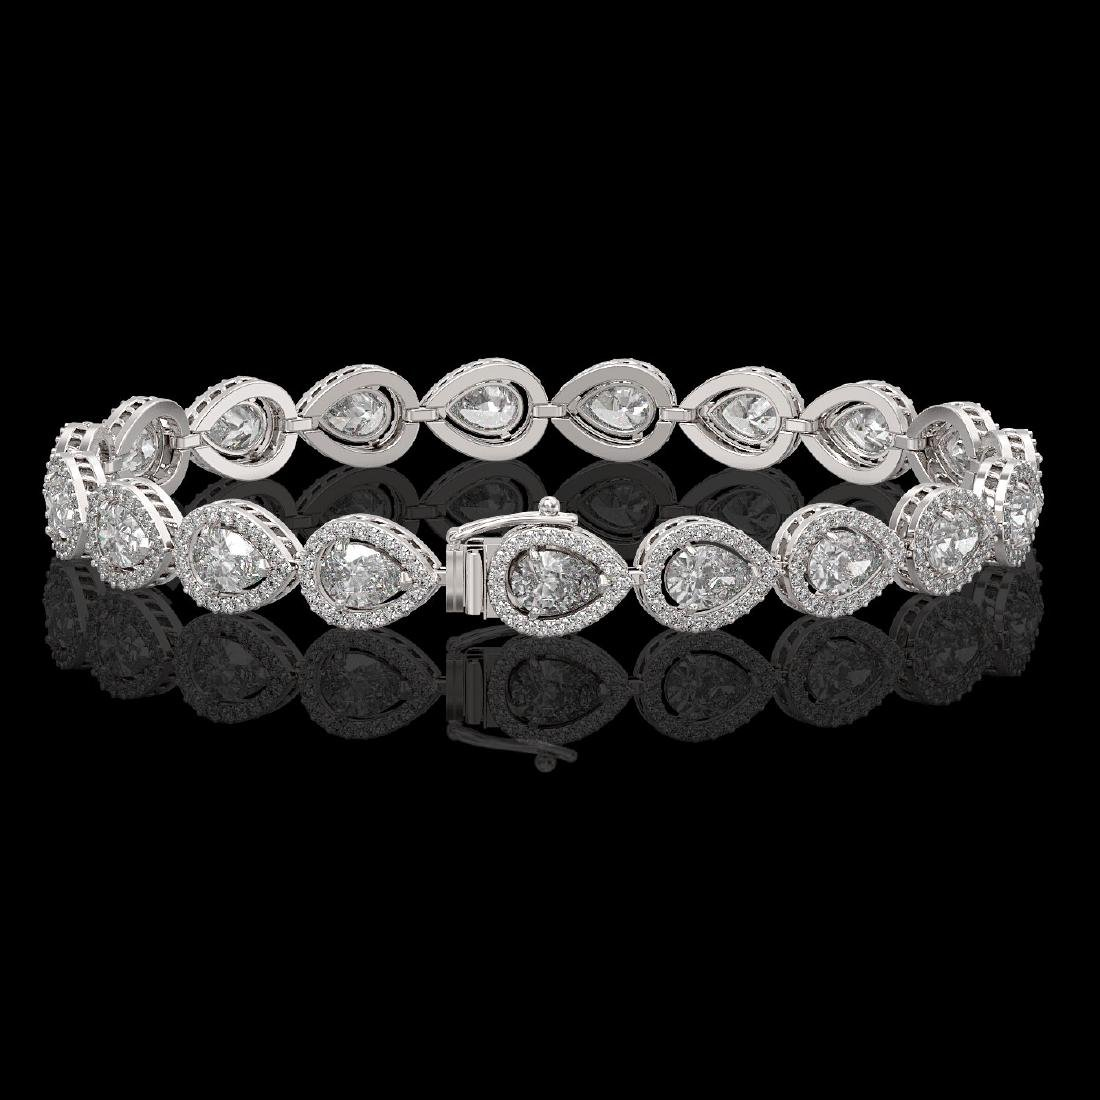 12.38 CTW Pear Diamond Designer Bracelet 18K White Gold - 2